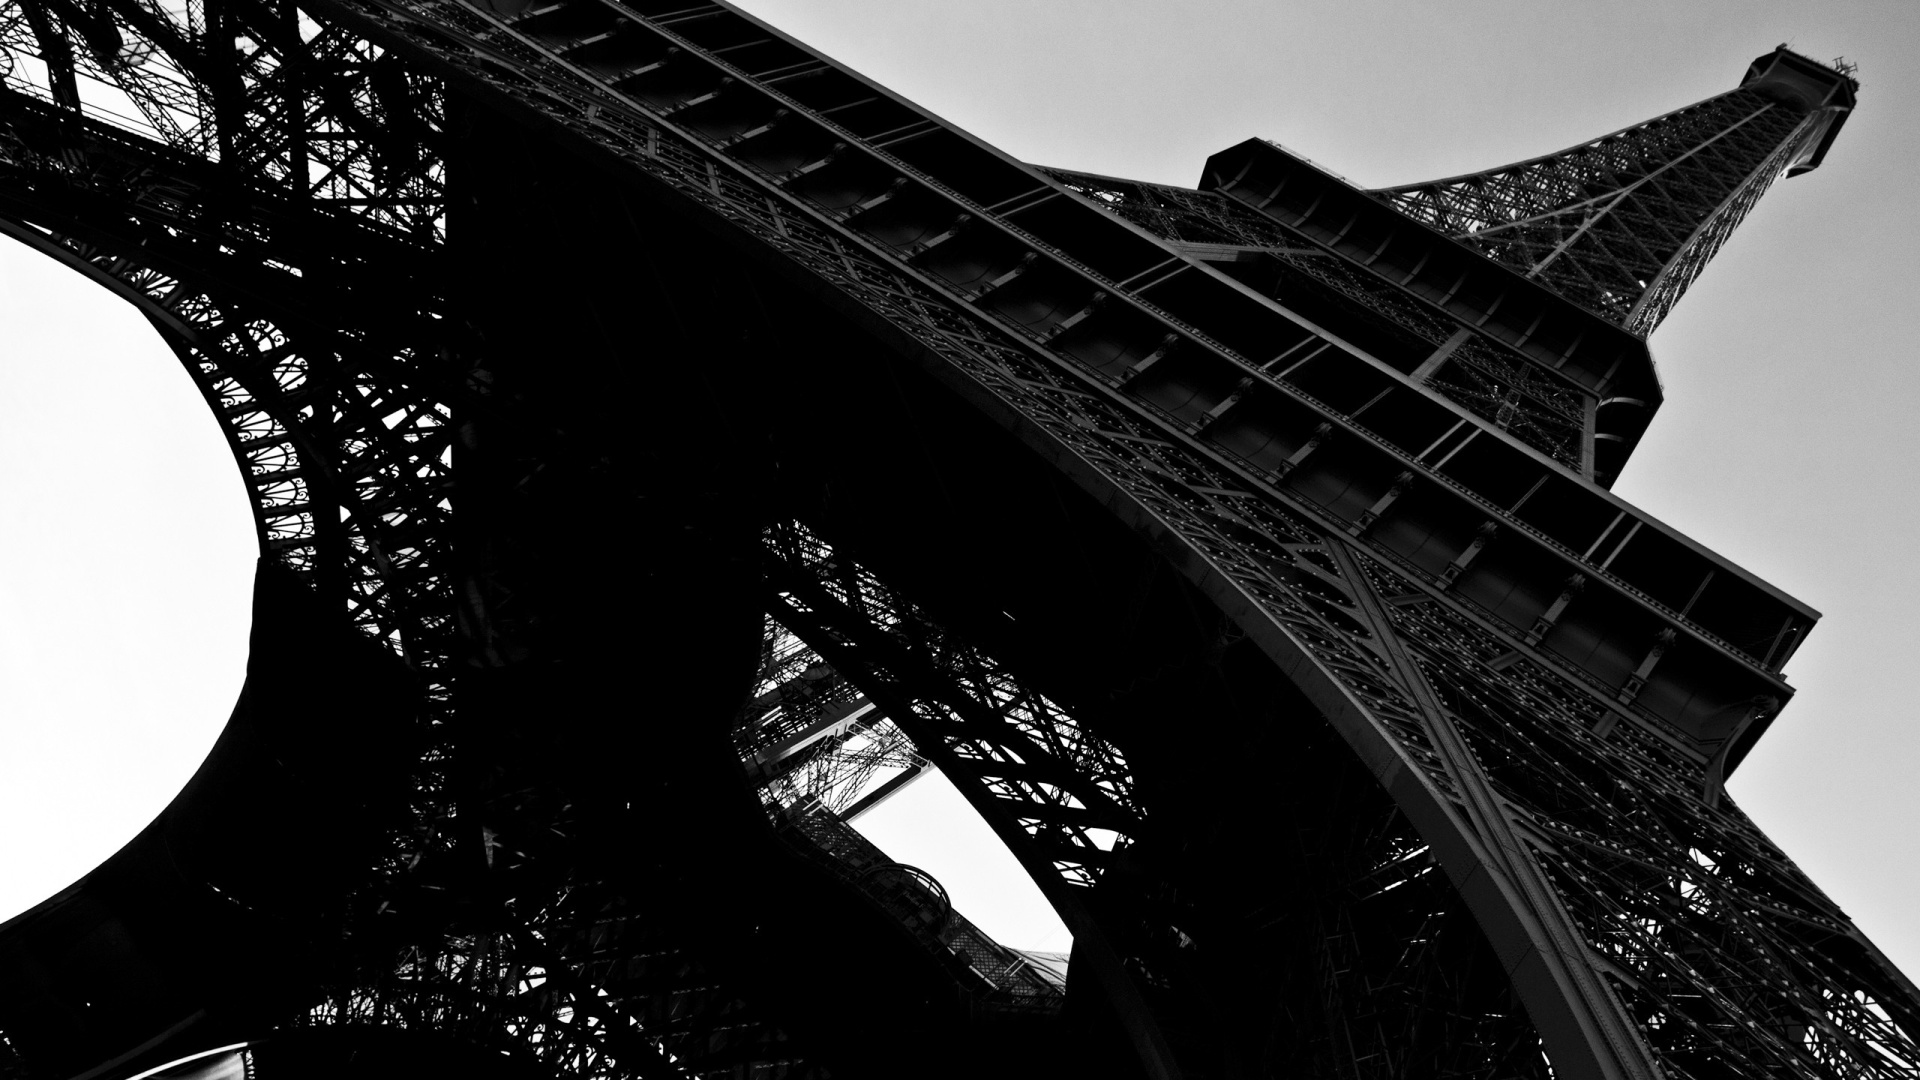 Hd wallpaper black and white - Eiffel Tower Black And White Desktop Wallpaper